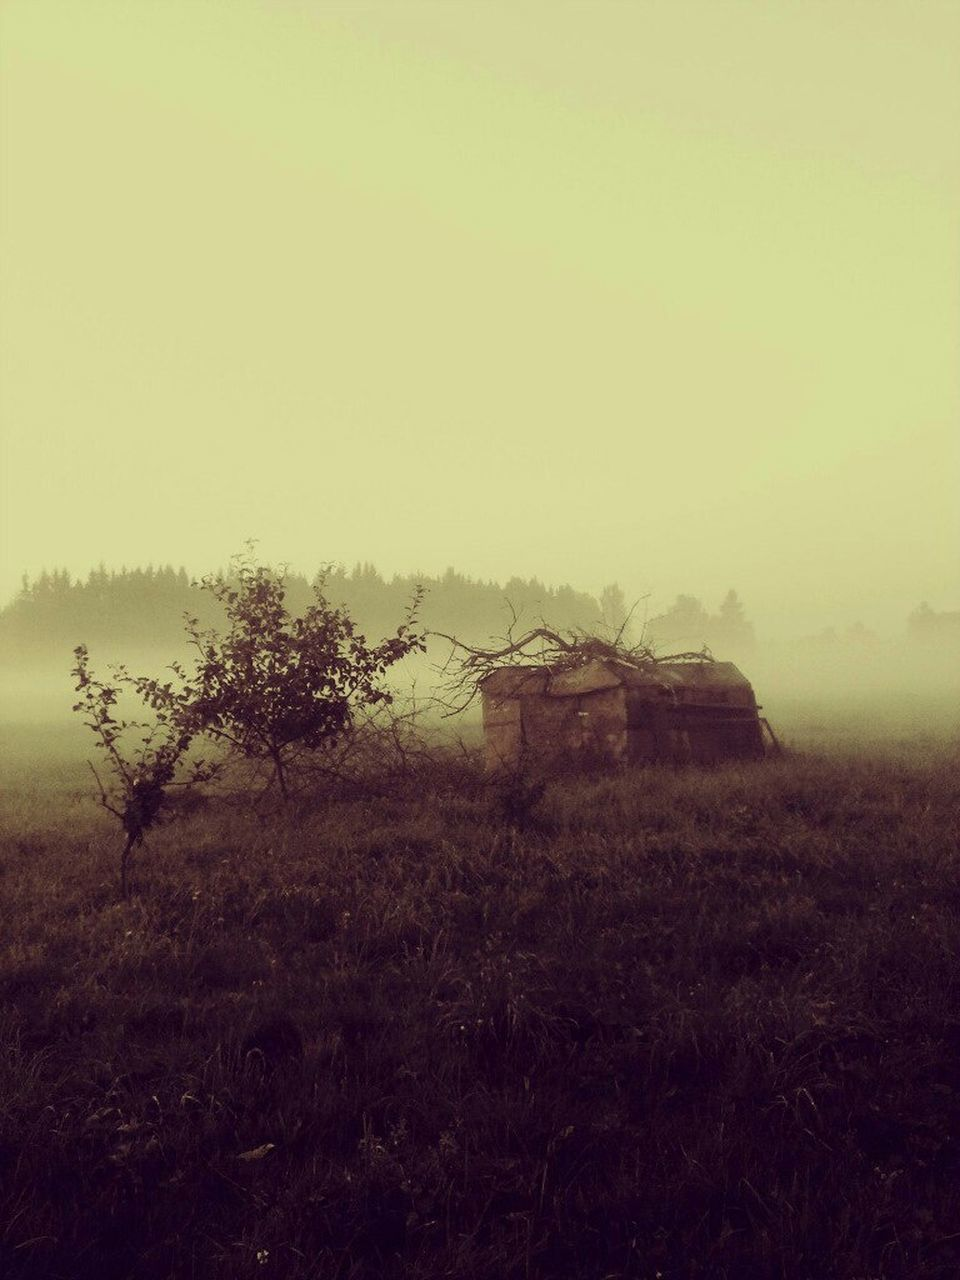 Abandoned House On Grassy Field In Foggy Weather